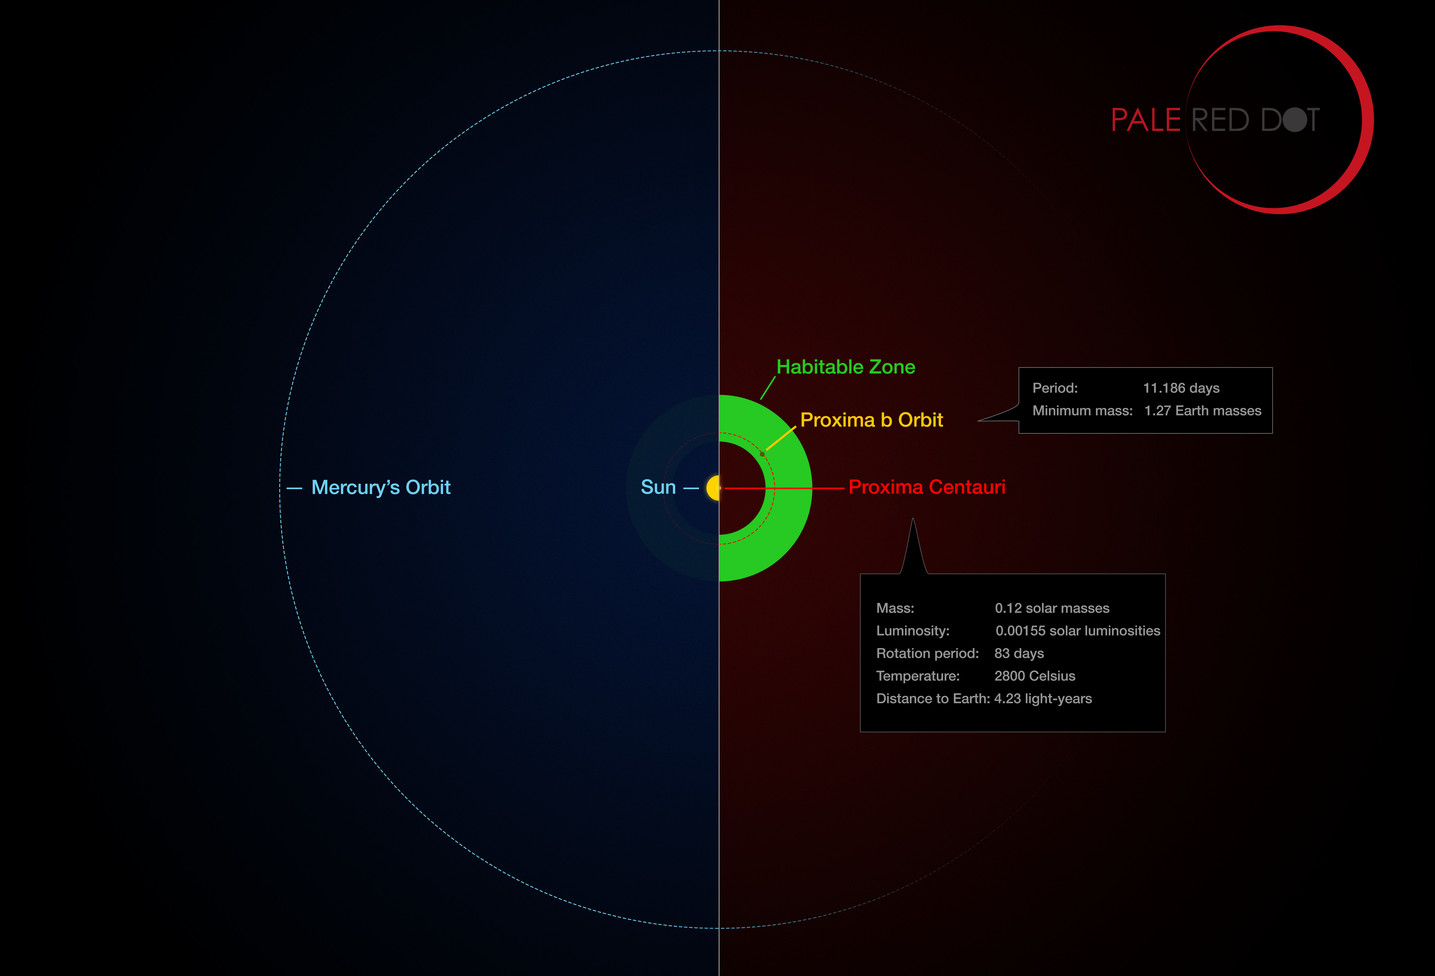 The orbit of Proxima b within its habitable zone, compared with the same region of our solar system. – Image Credit: ESO/M. Kornmesser/G. Coleman